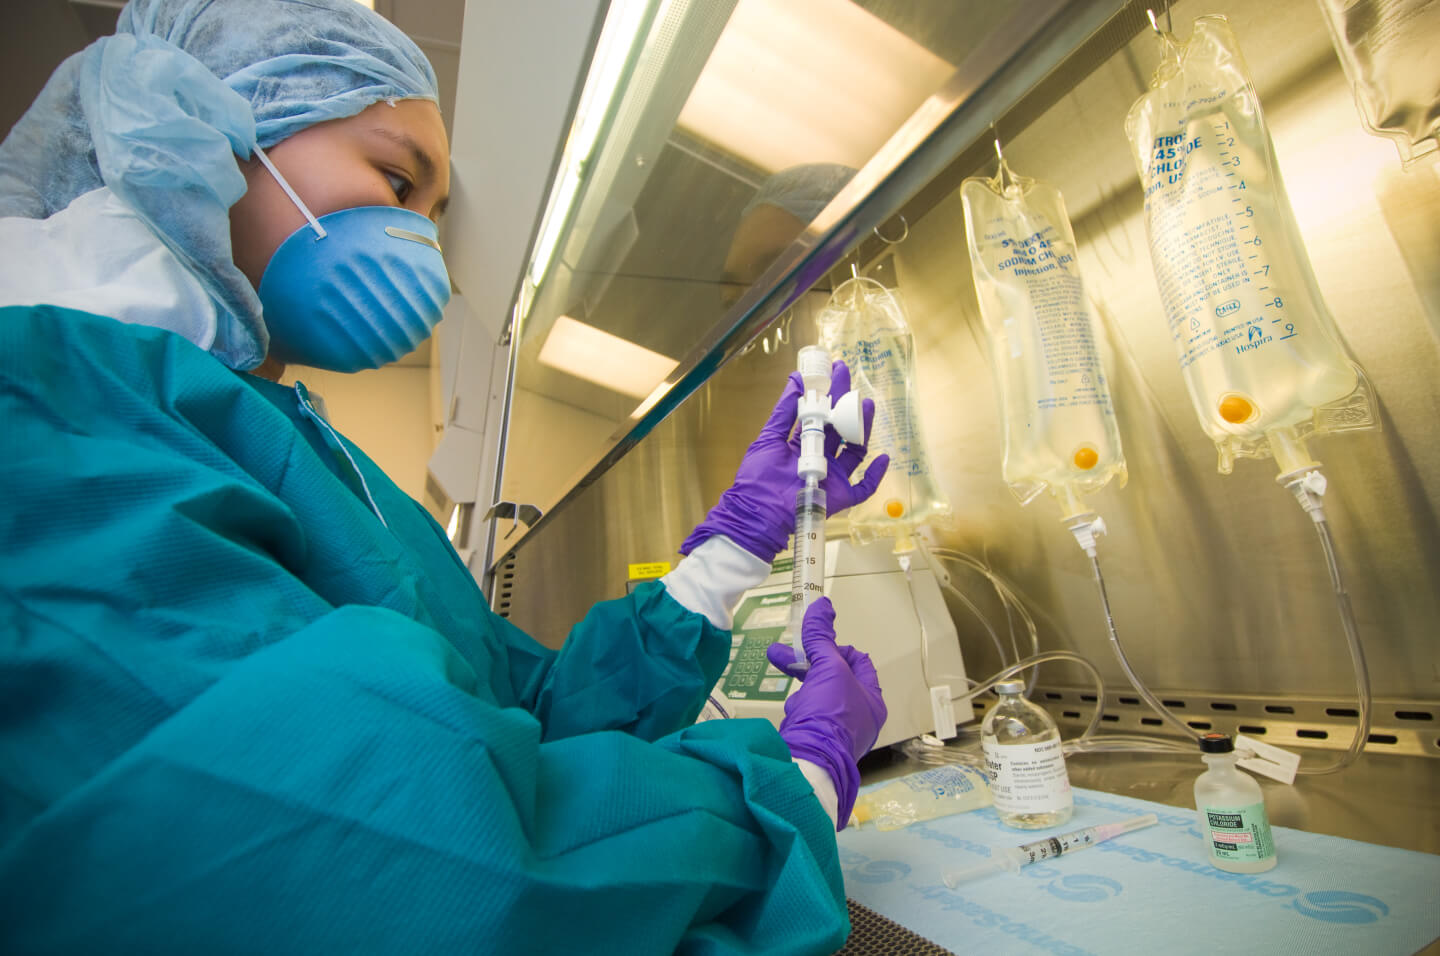 A pharmacy technician prepares infusion medication in a biological safety cabinet.